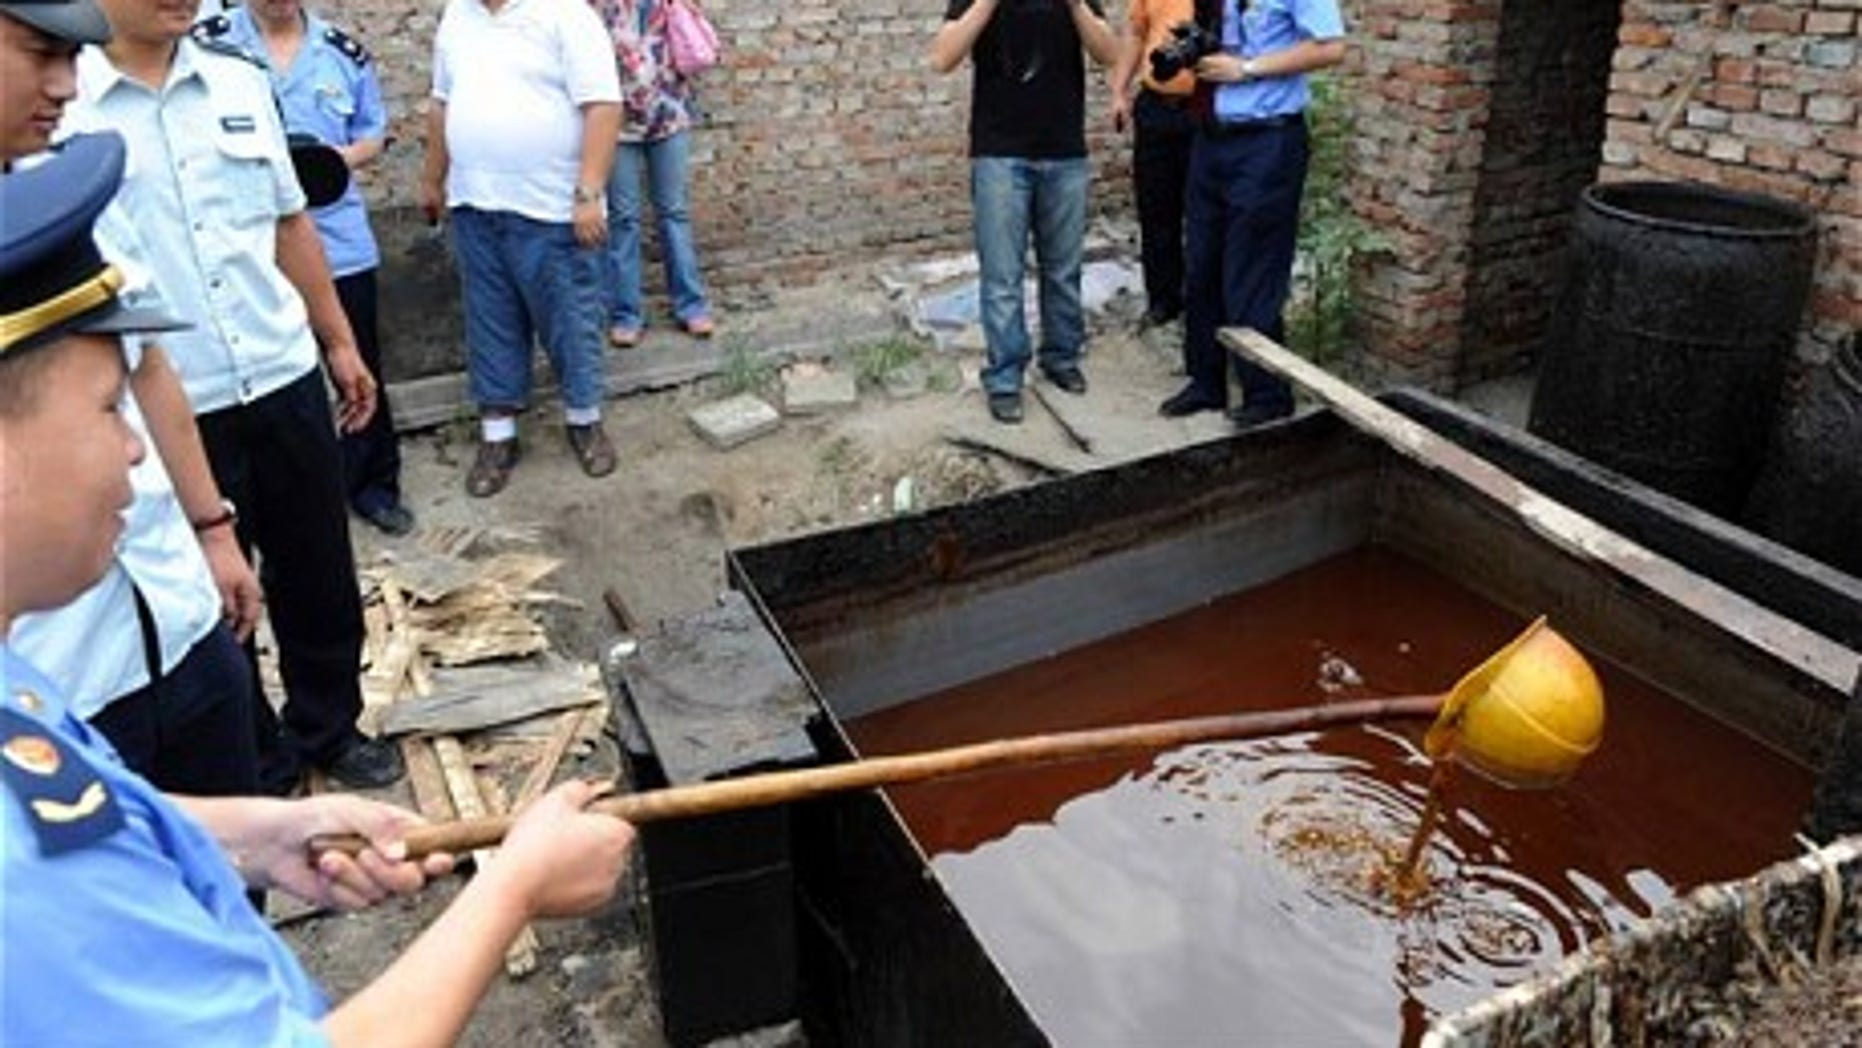 """Police inspect illegal cooking oil, better known as """"sewer oil"""" seized during a crackdown in Beijing."""